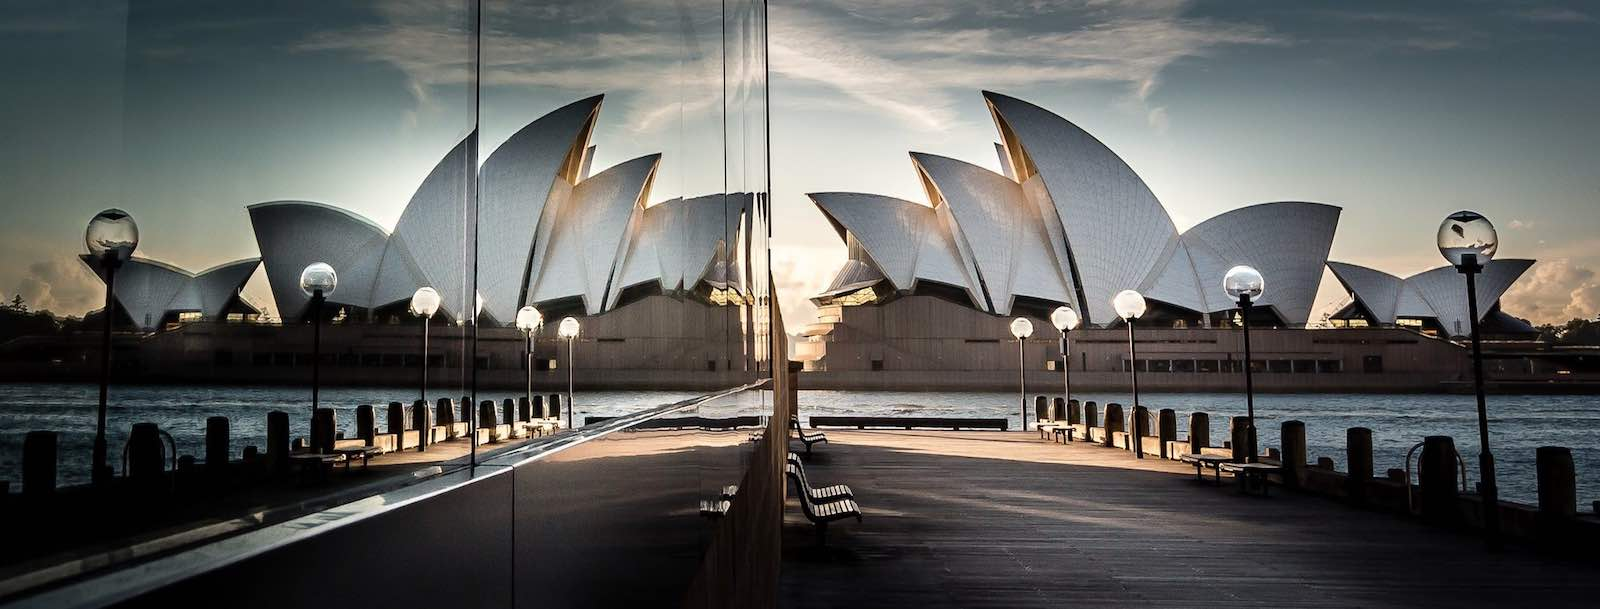 Sydney Opera House (Photo: Martin Snicer/Flickr)